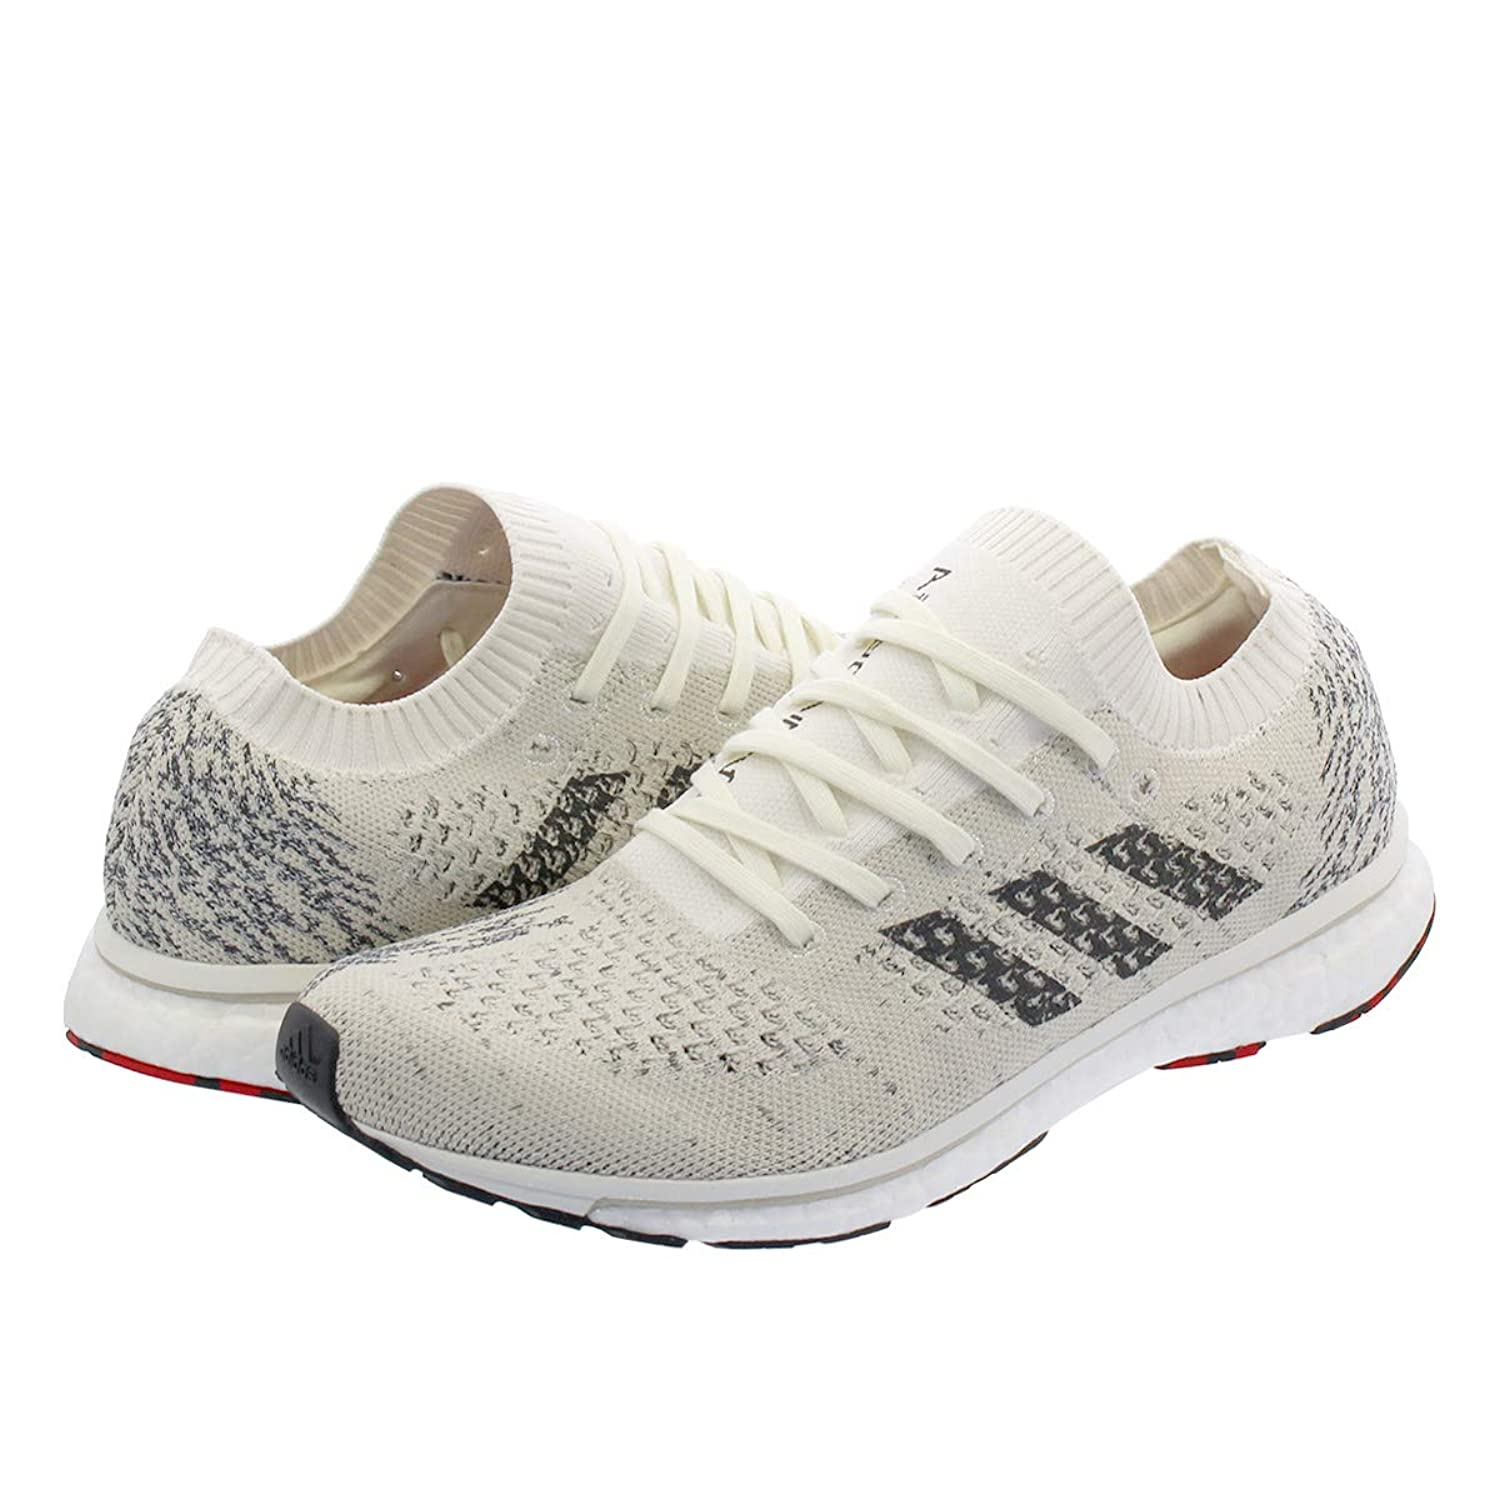 [アディダス] adiZERO PRIME LTD CLOUD WHITE/CARBON/CLEAR BROWN